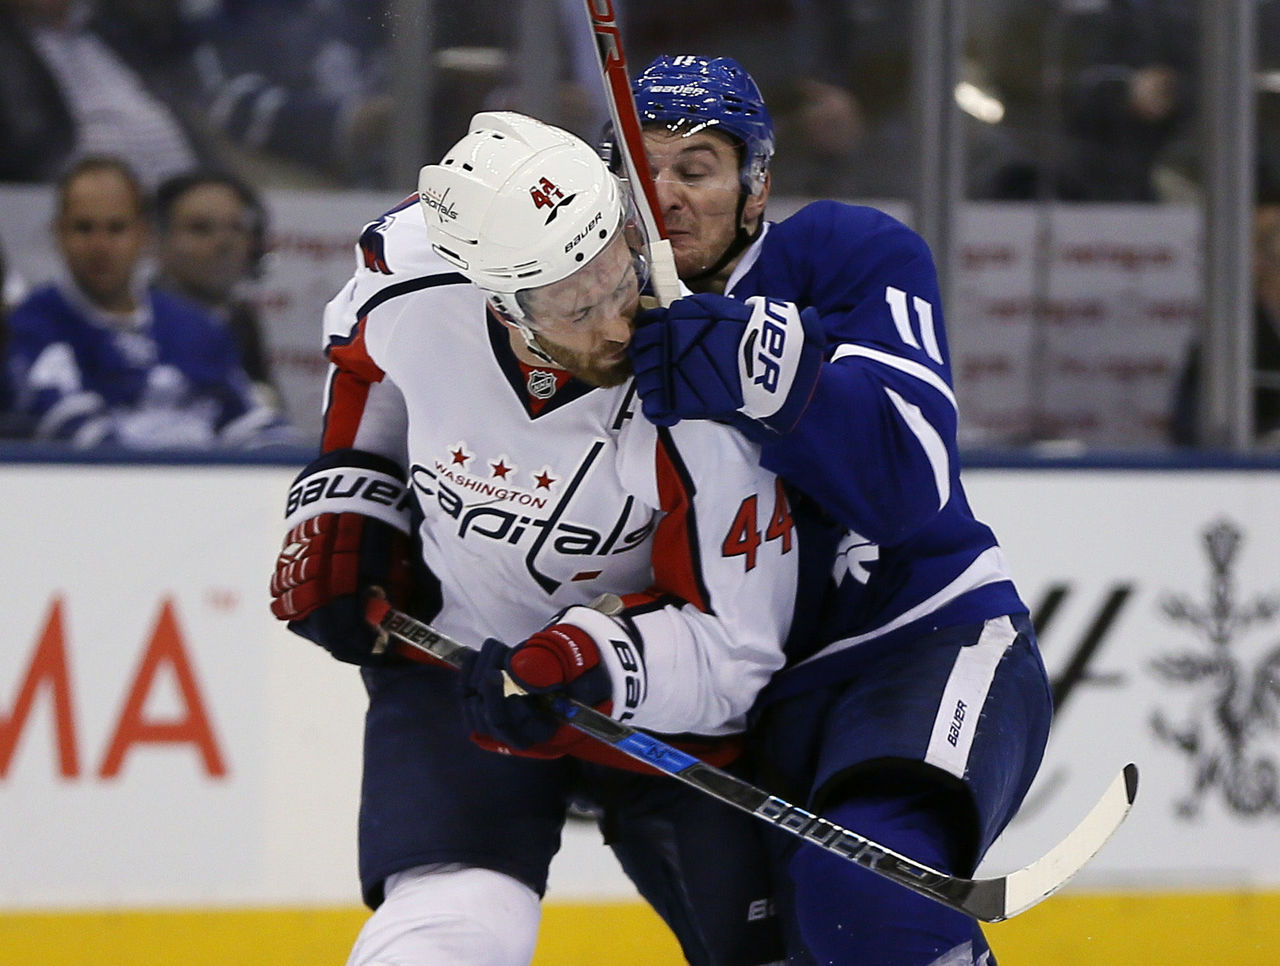 Cropped 2017 04 20t030538z 262704063 nocid rtrmadp 3 nhl stanley cup playoffs washington capitals at toronto maple leafs